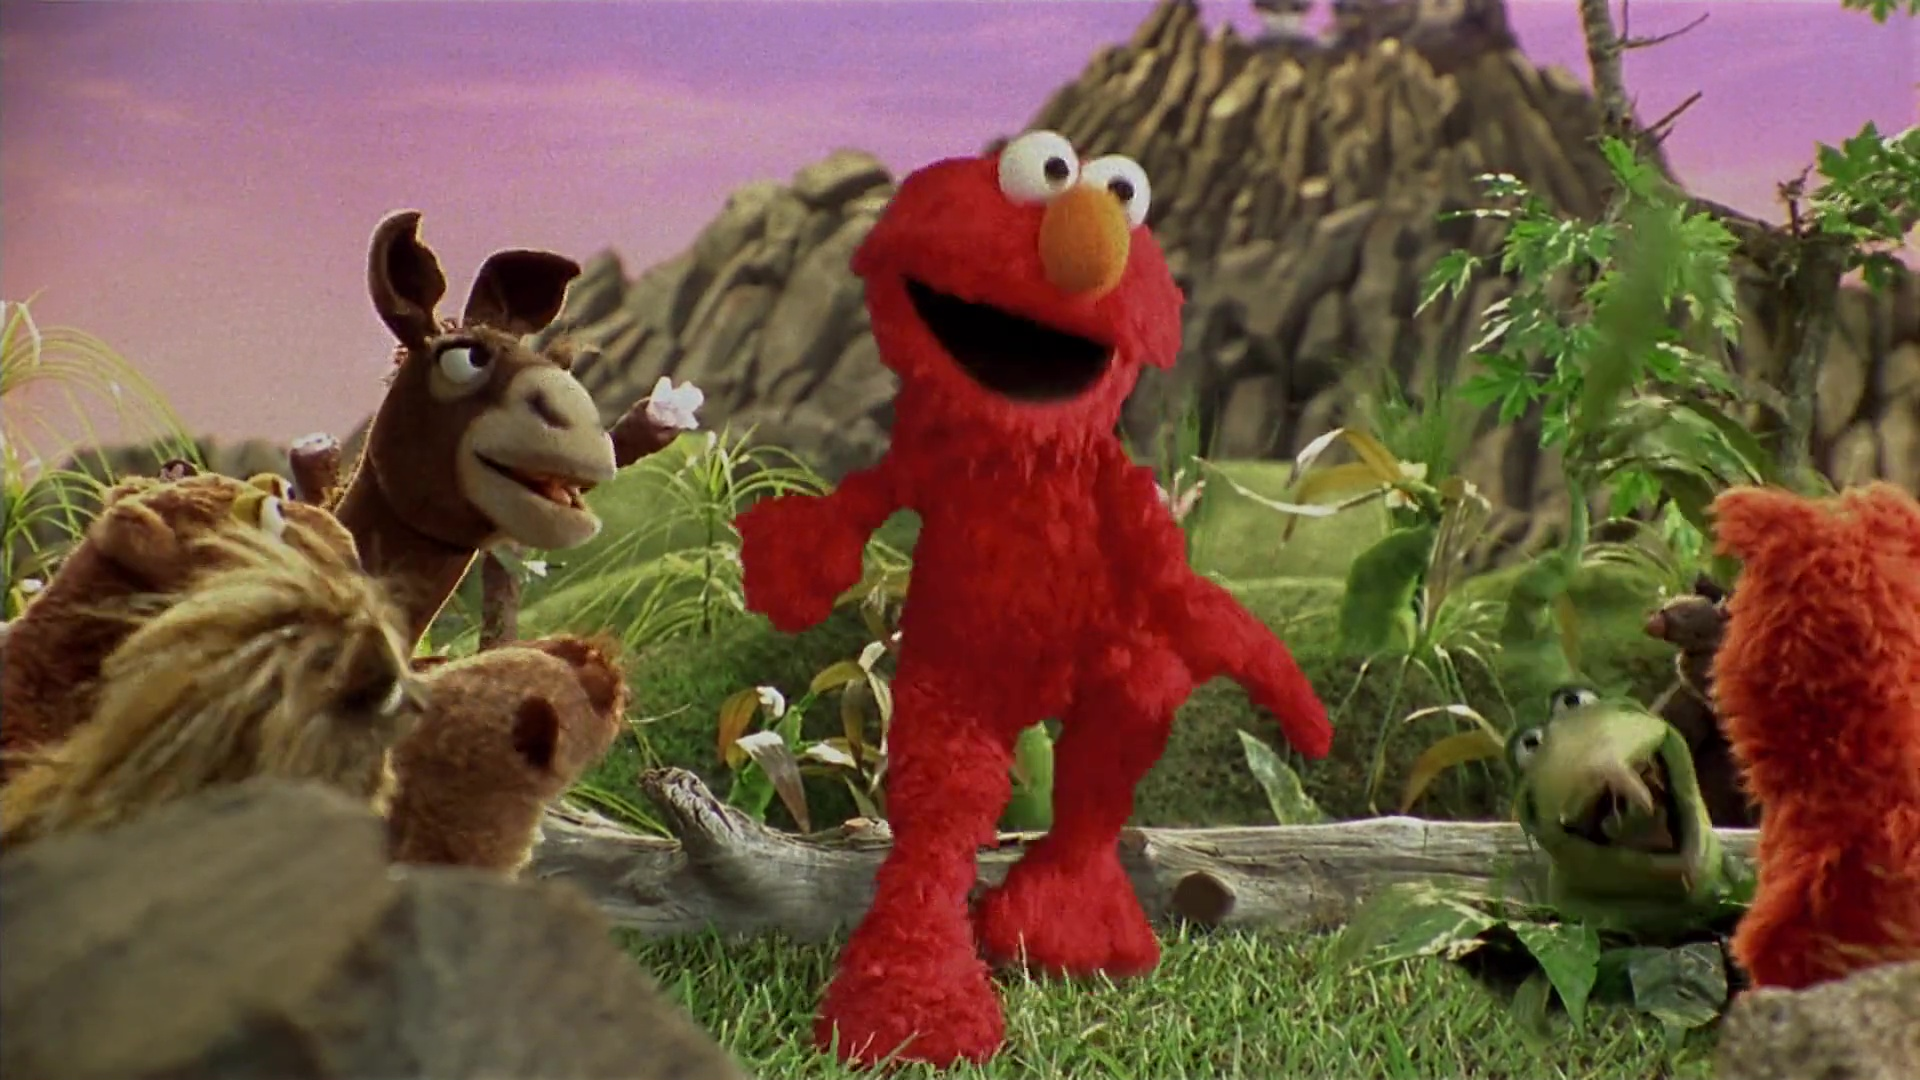 11. The Adventures of Elmo in Grouchland